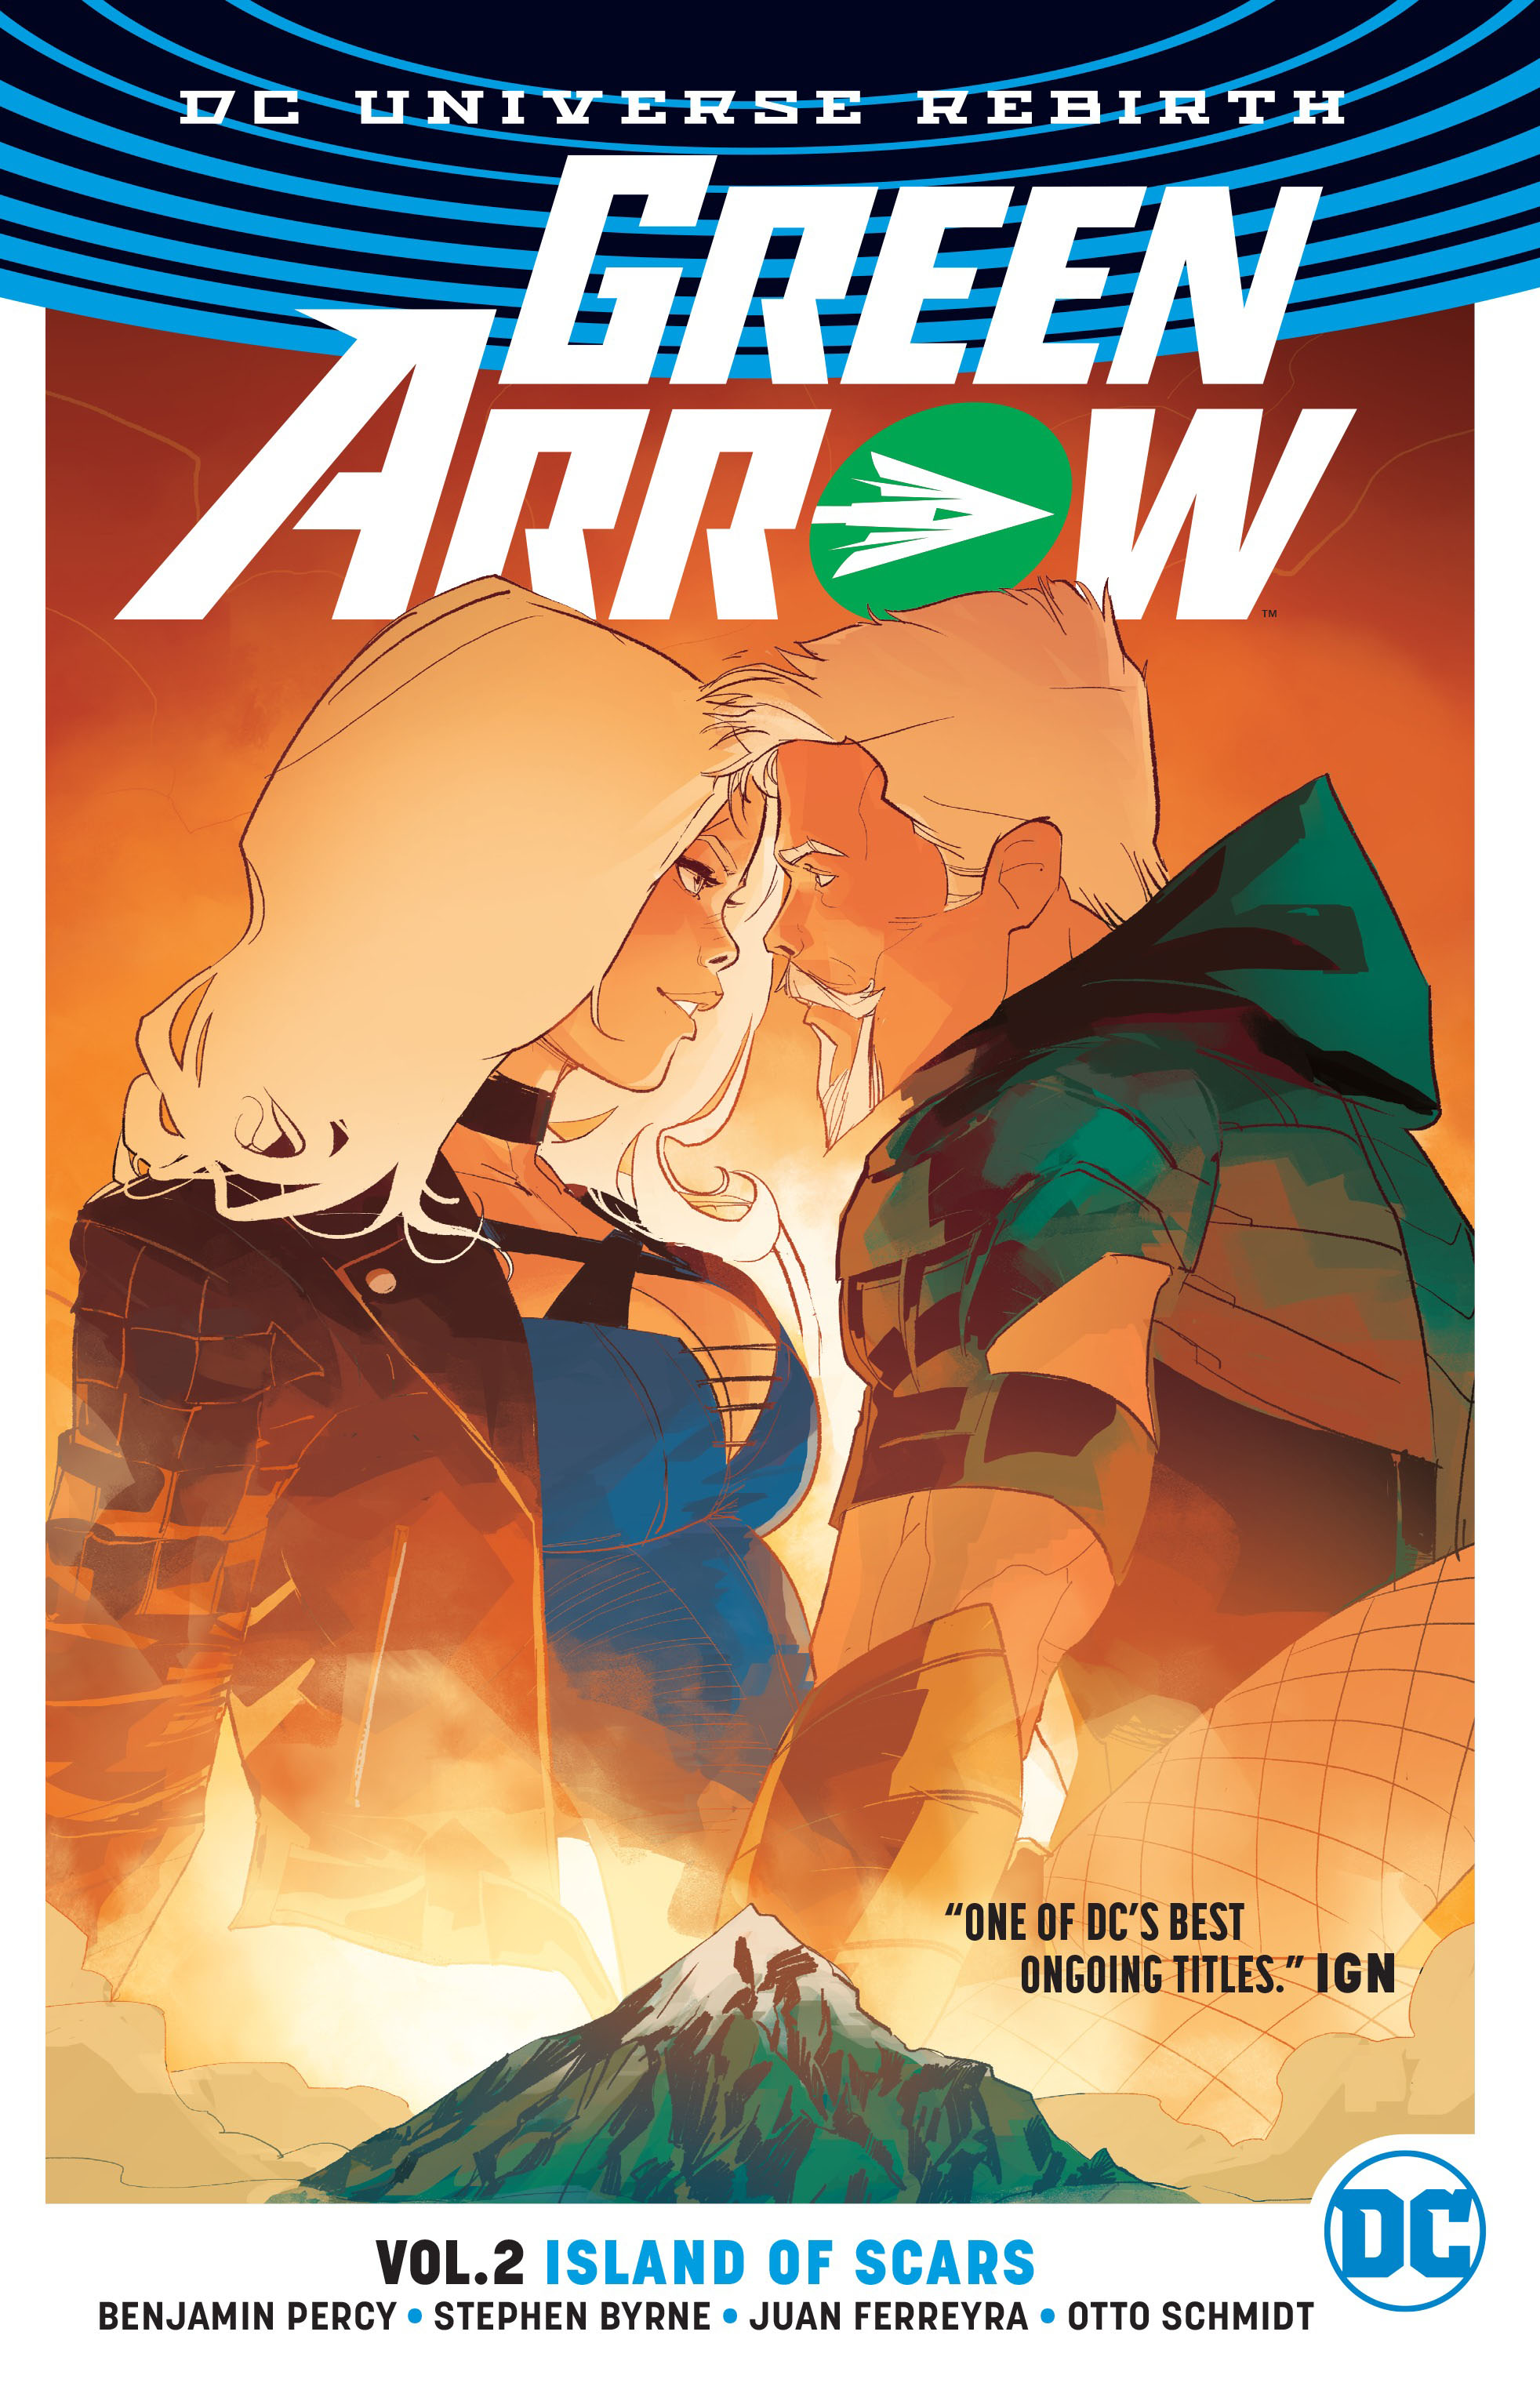 Green Arrow Vol. 2: Island of Scars (Rebirth) green arrow vol 3 emerald outlaw rebirth